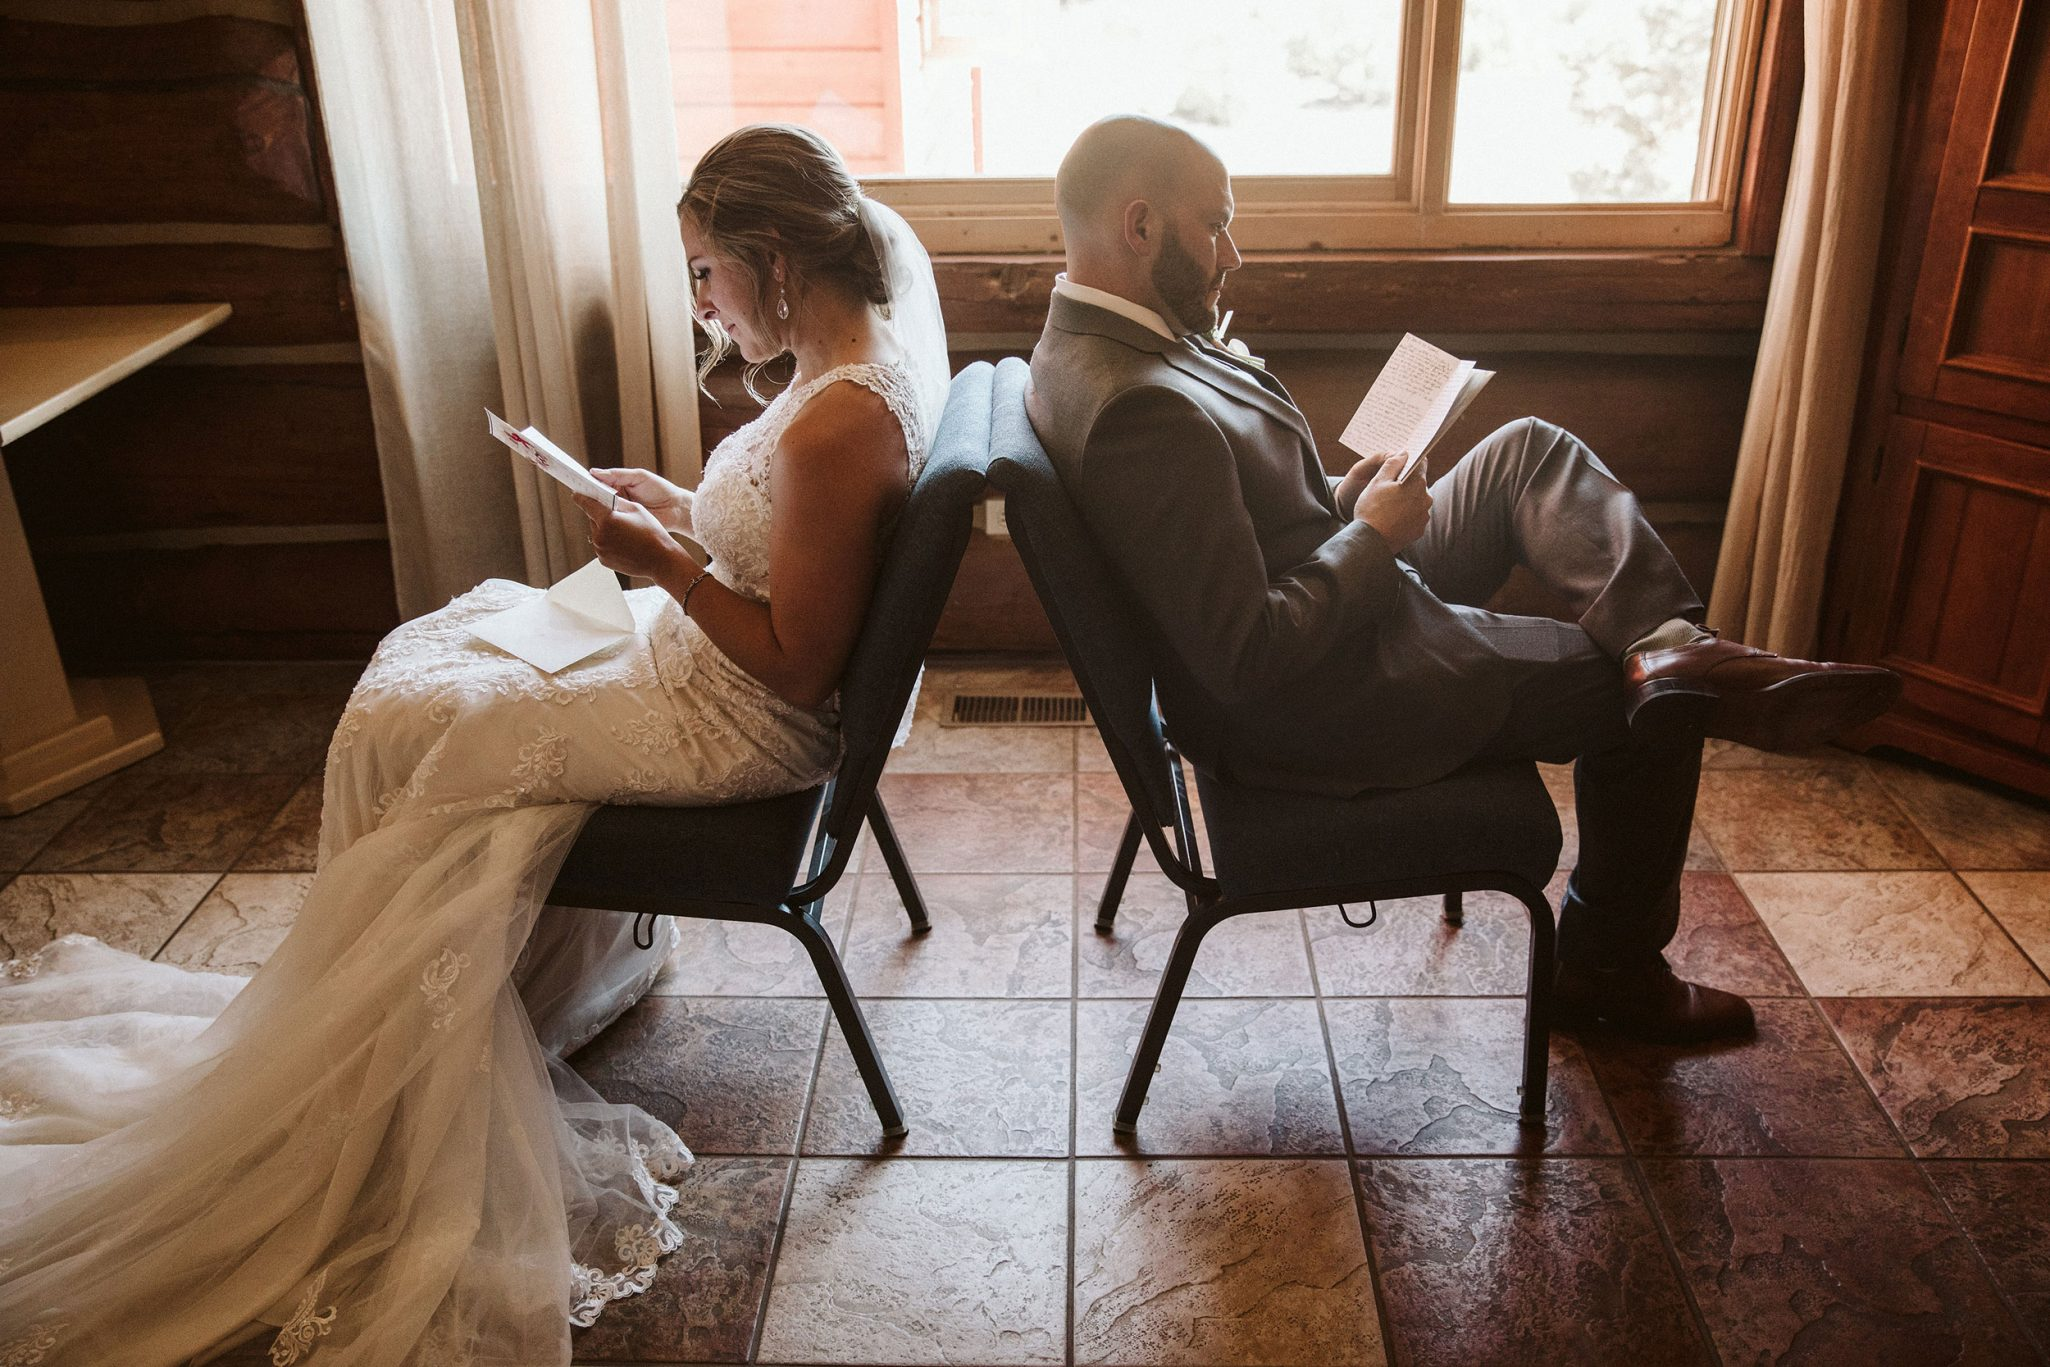 Bride & Groom read private vows to each other in cards that they exchanged just before the ceremony.